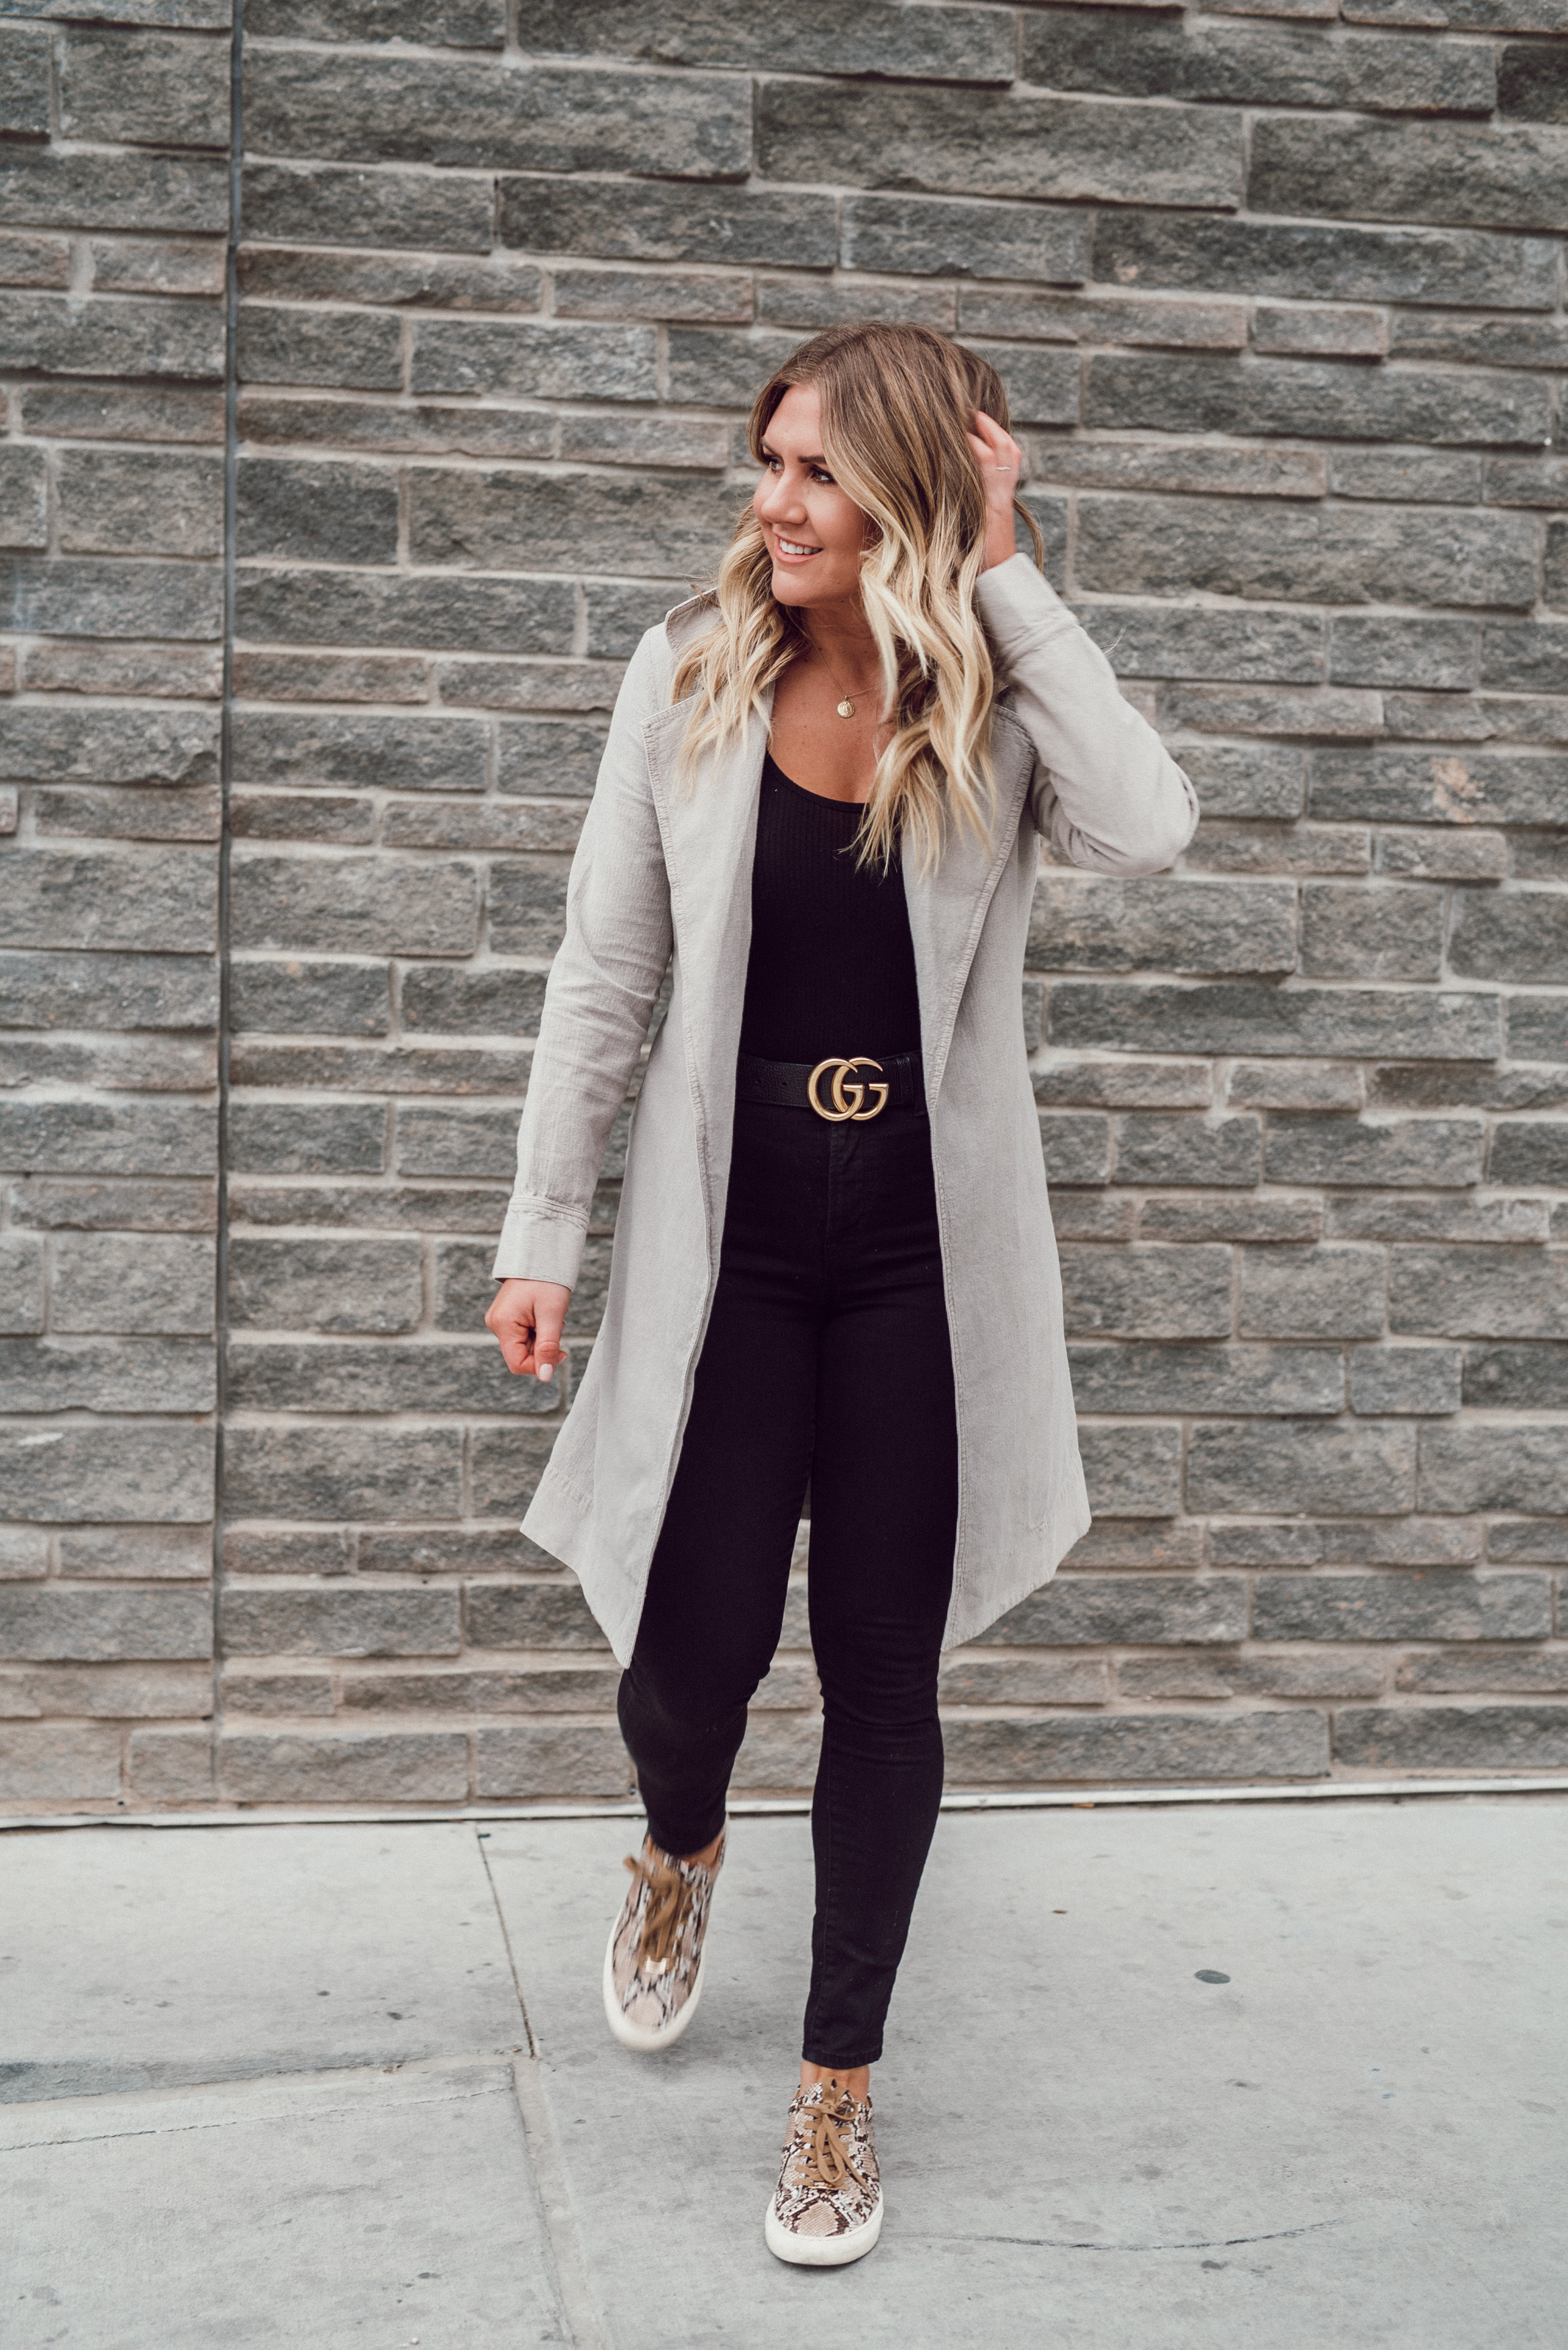 via Thea: Chic & Comfy Work Style